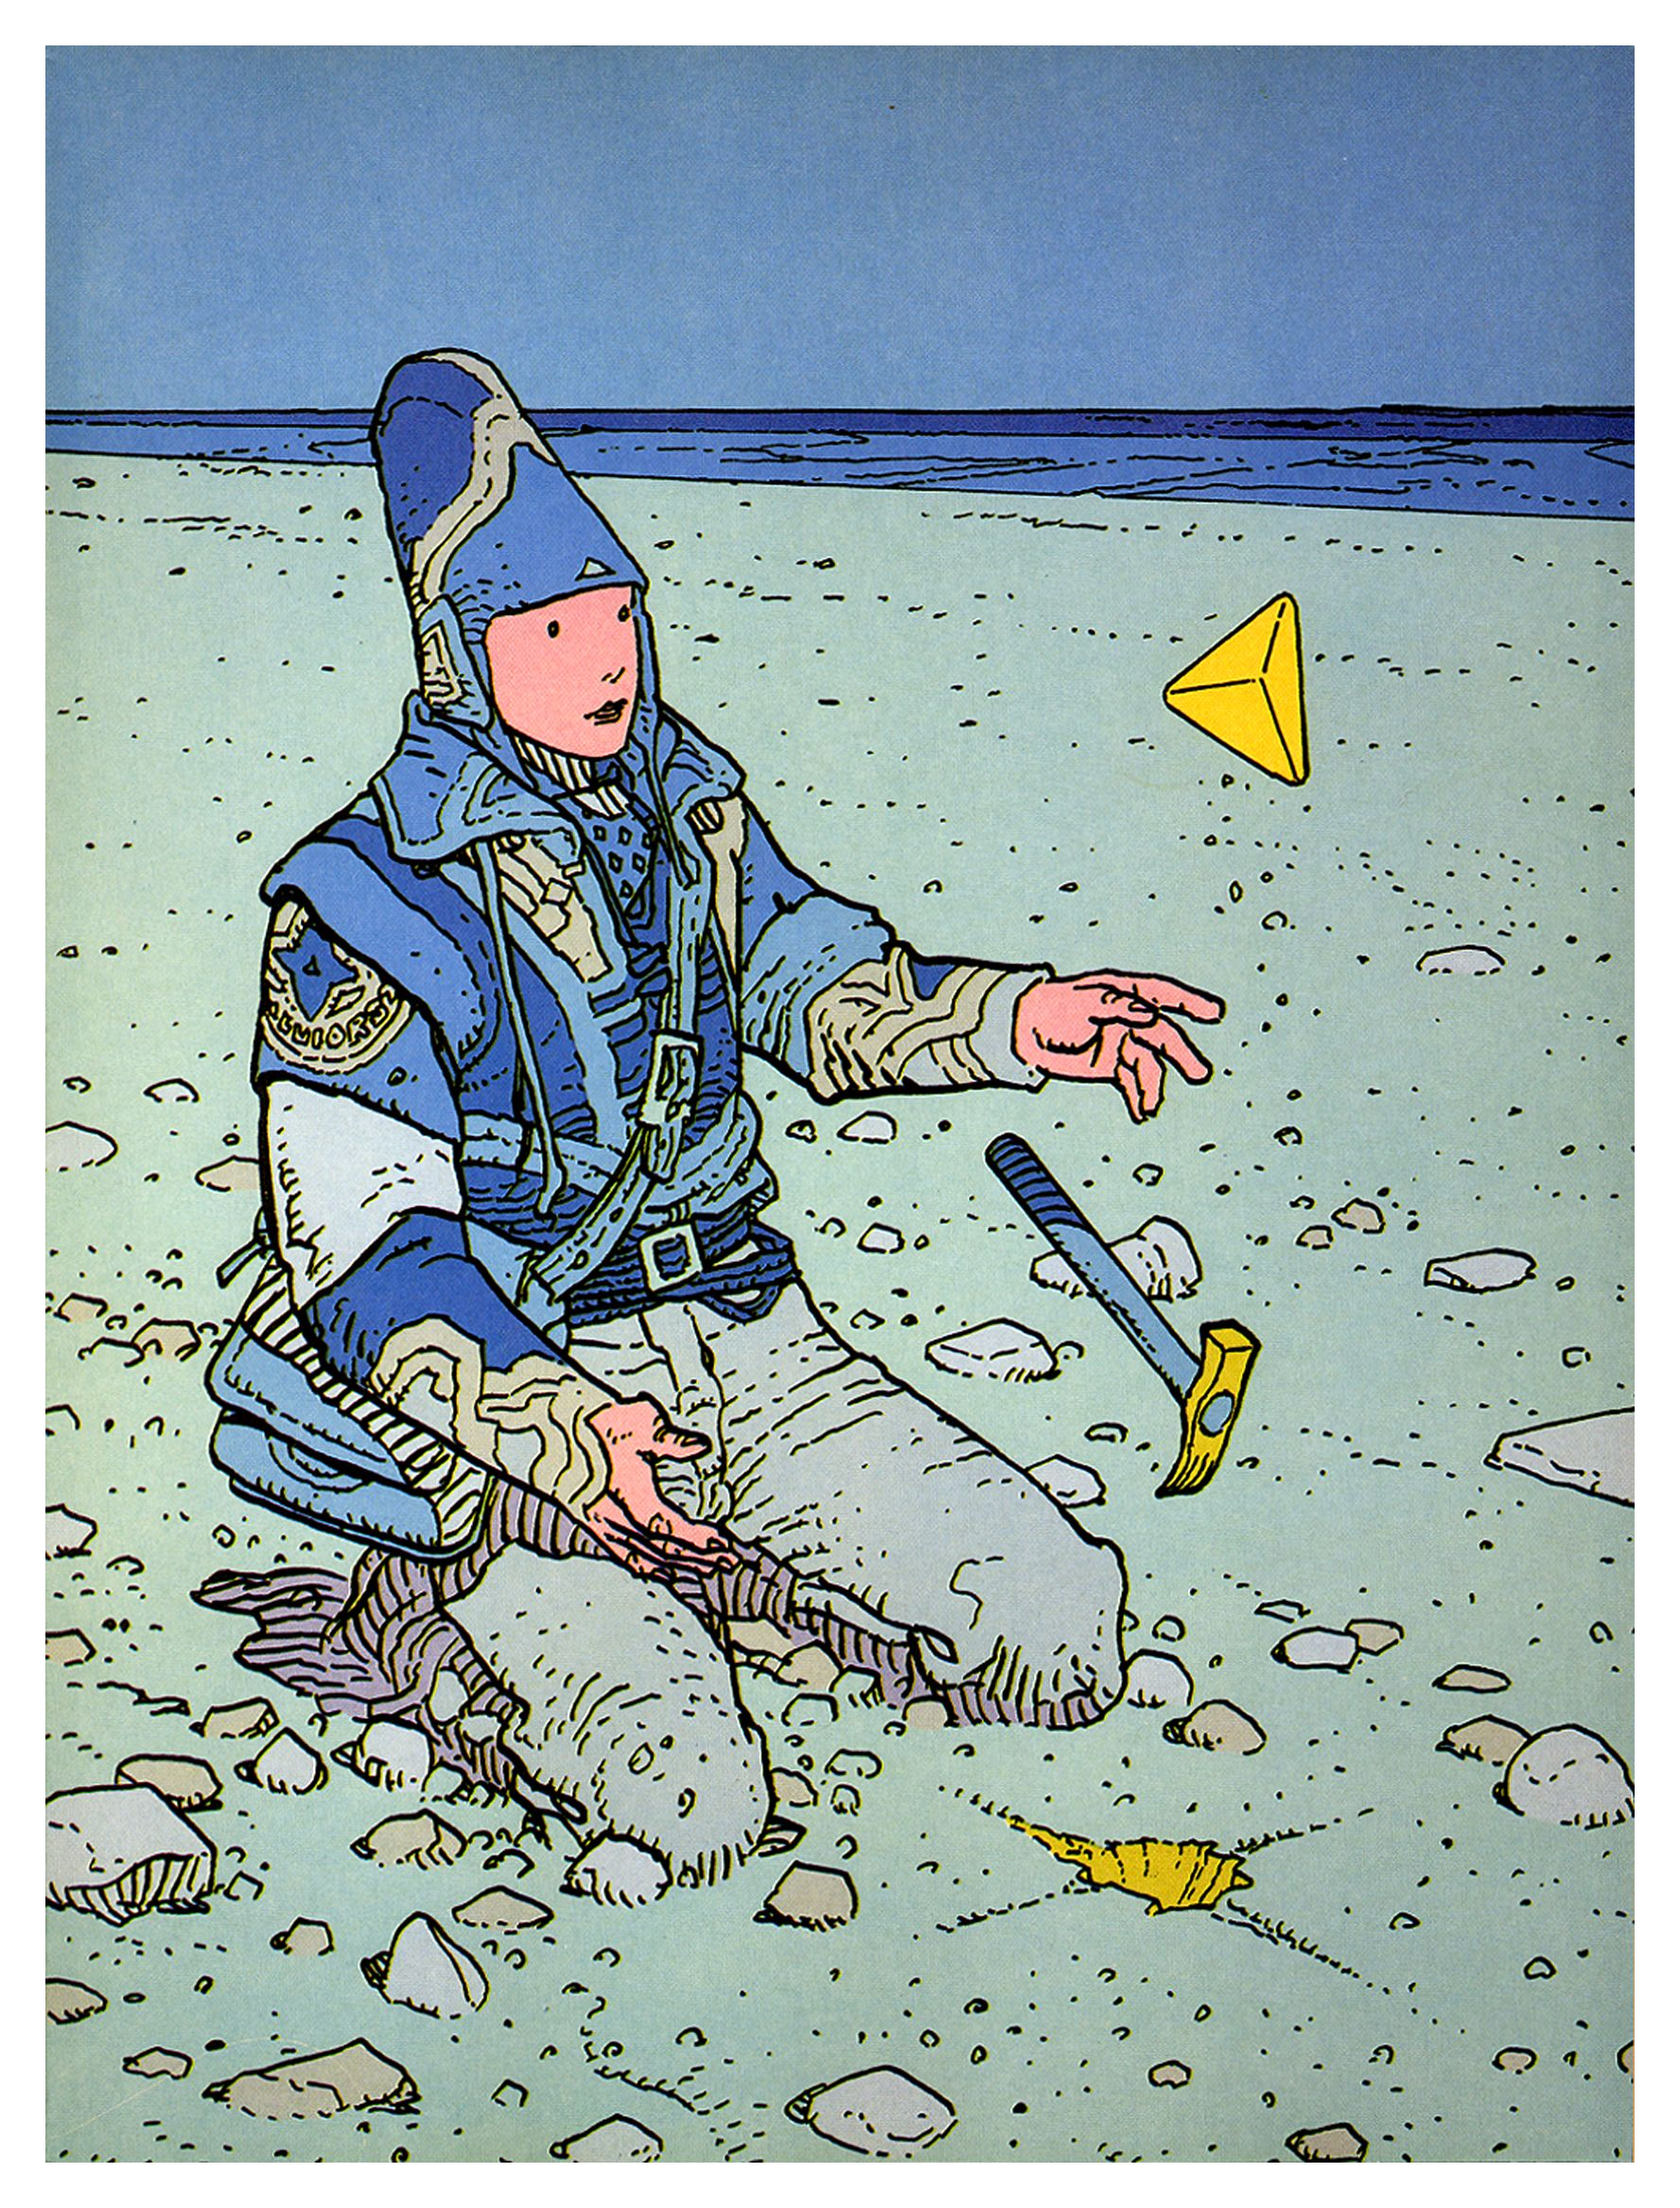 The Great Jean Giraud.  My Favourite graphic Artist. I have only just discovered that he pass away in march.  glumness. A legendary inspiration for so many film makers and artists.